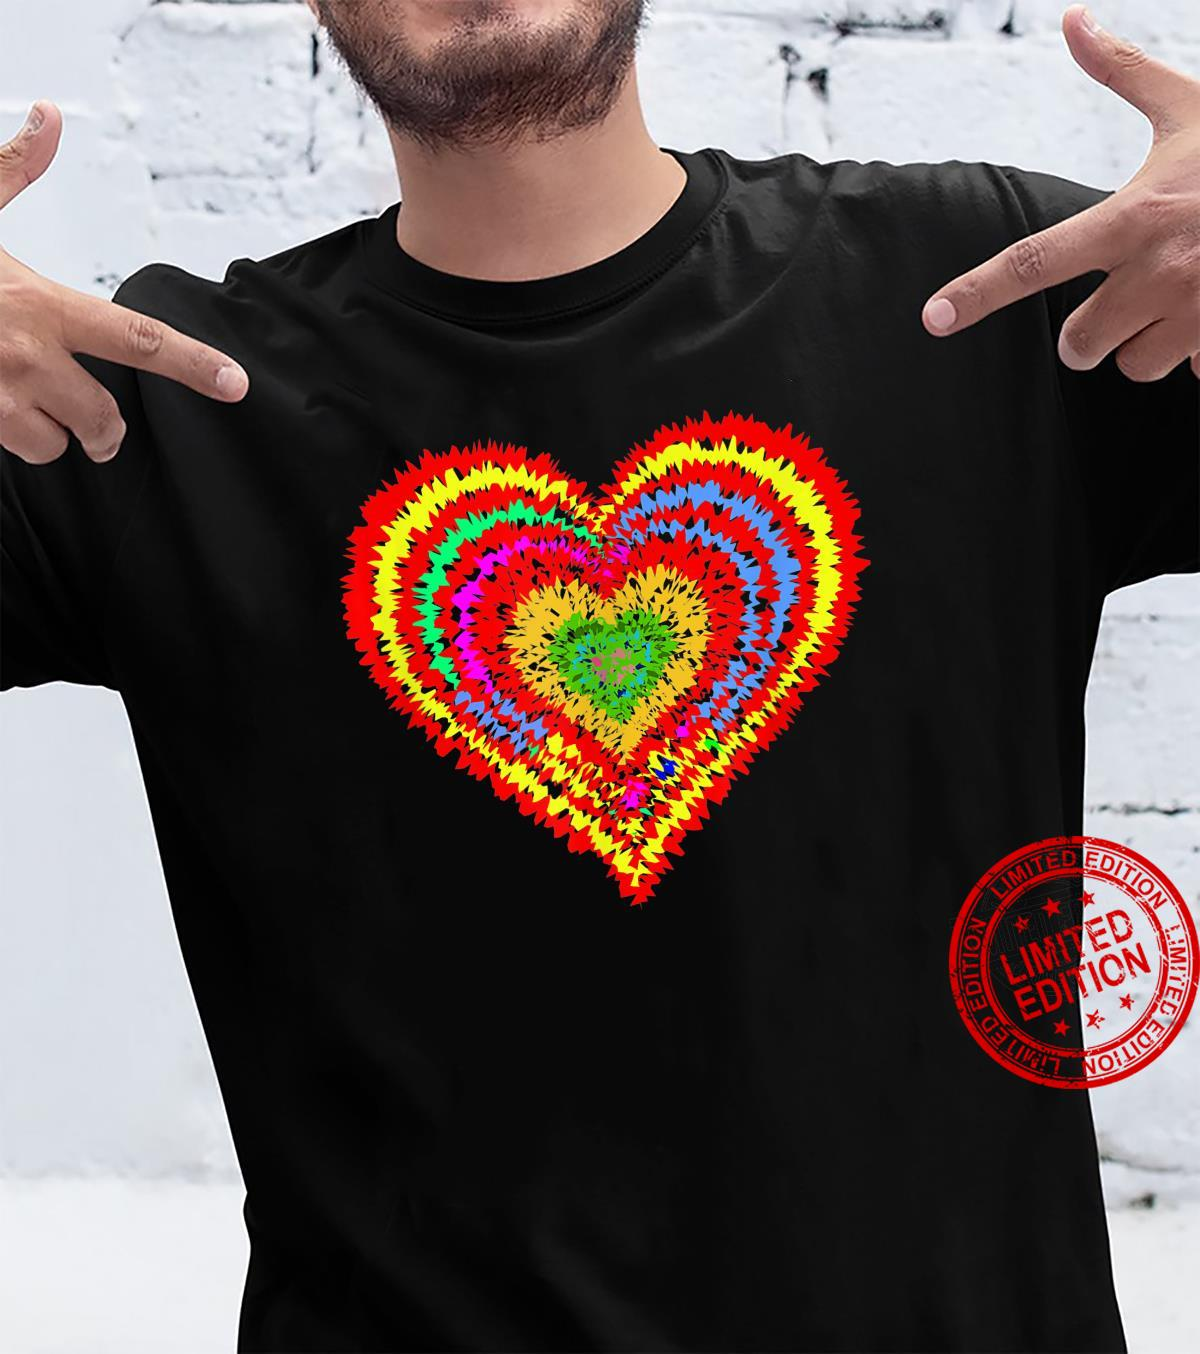 Gift Day Love Couples Valentine's Saint Present Him Her Wife Shirt